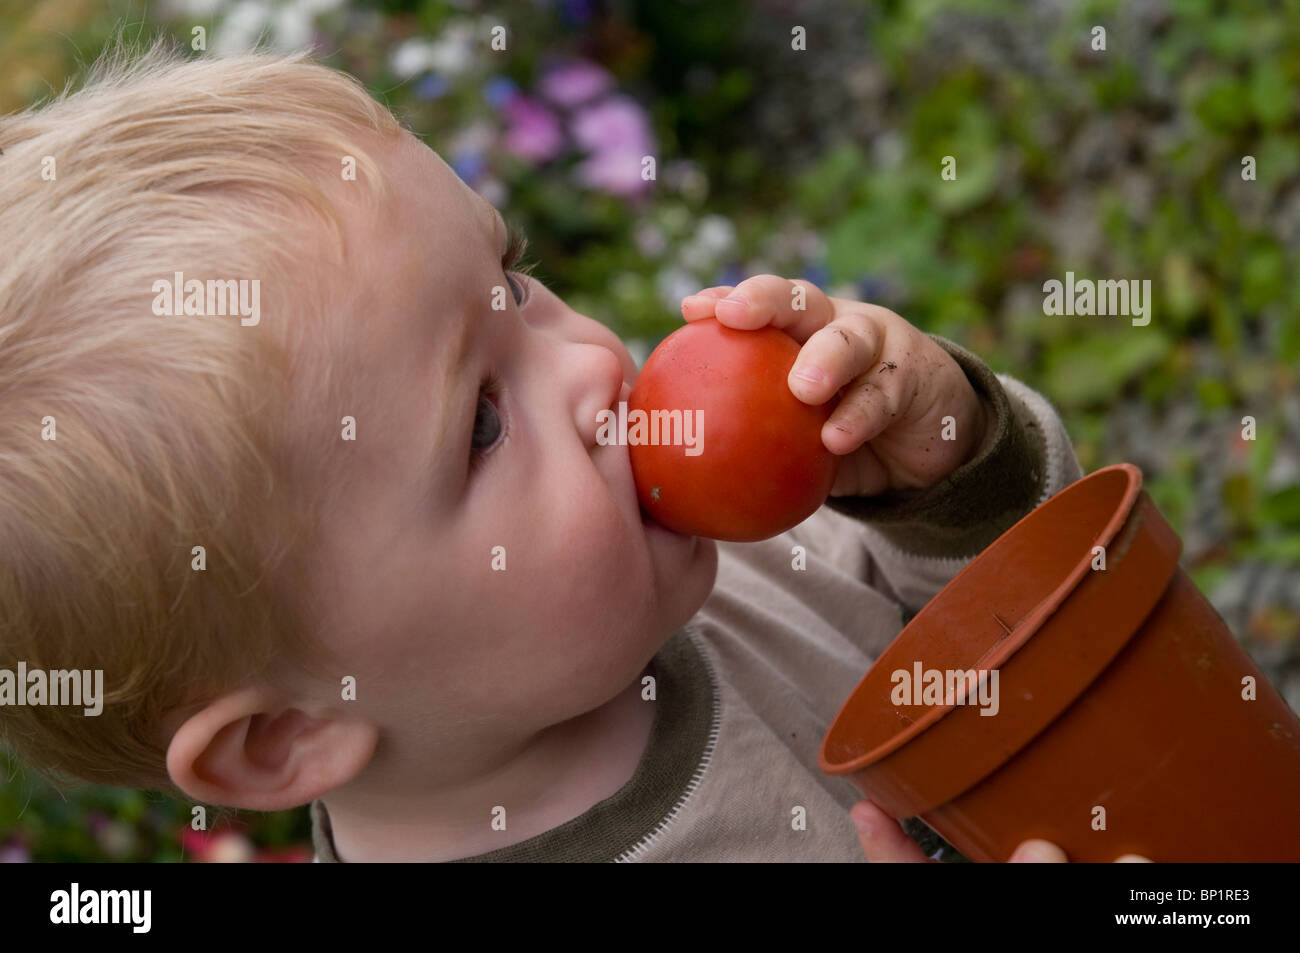 Young Boy tries to eat a freshly picked tomato at a garden at home. - Stock Image